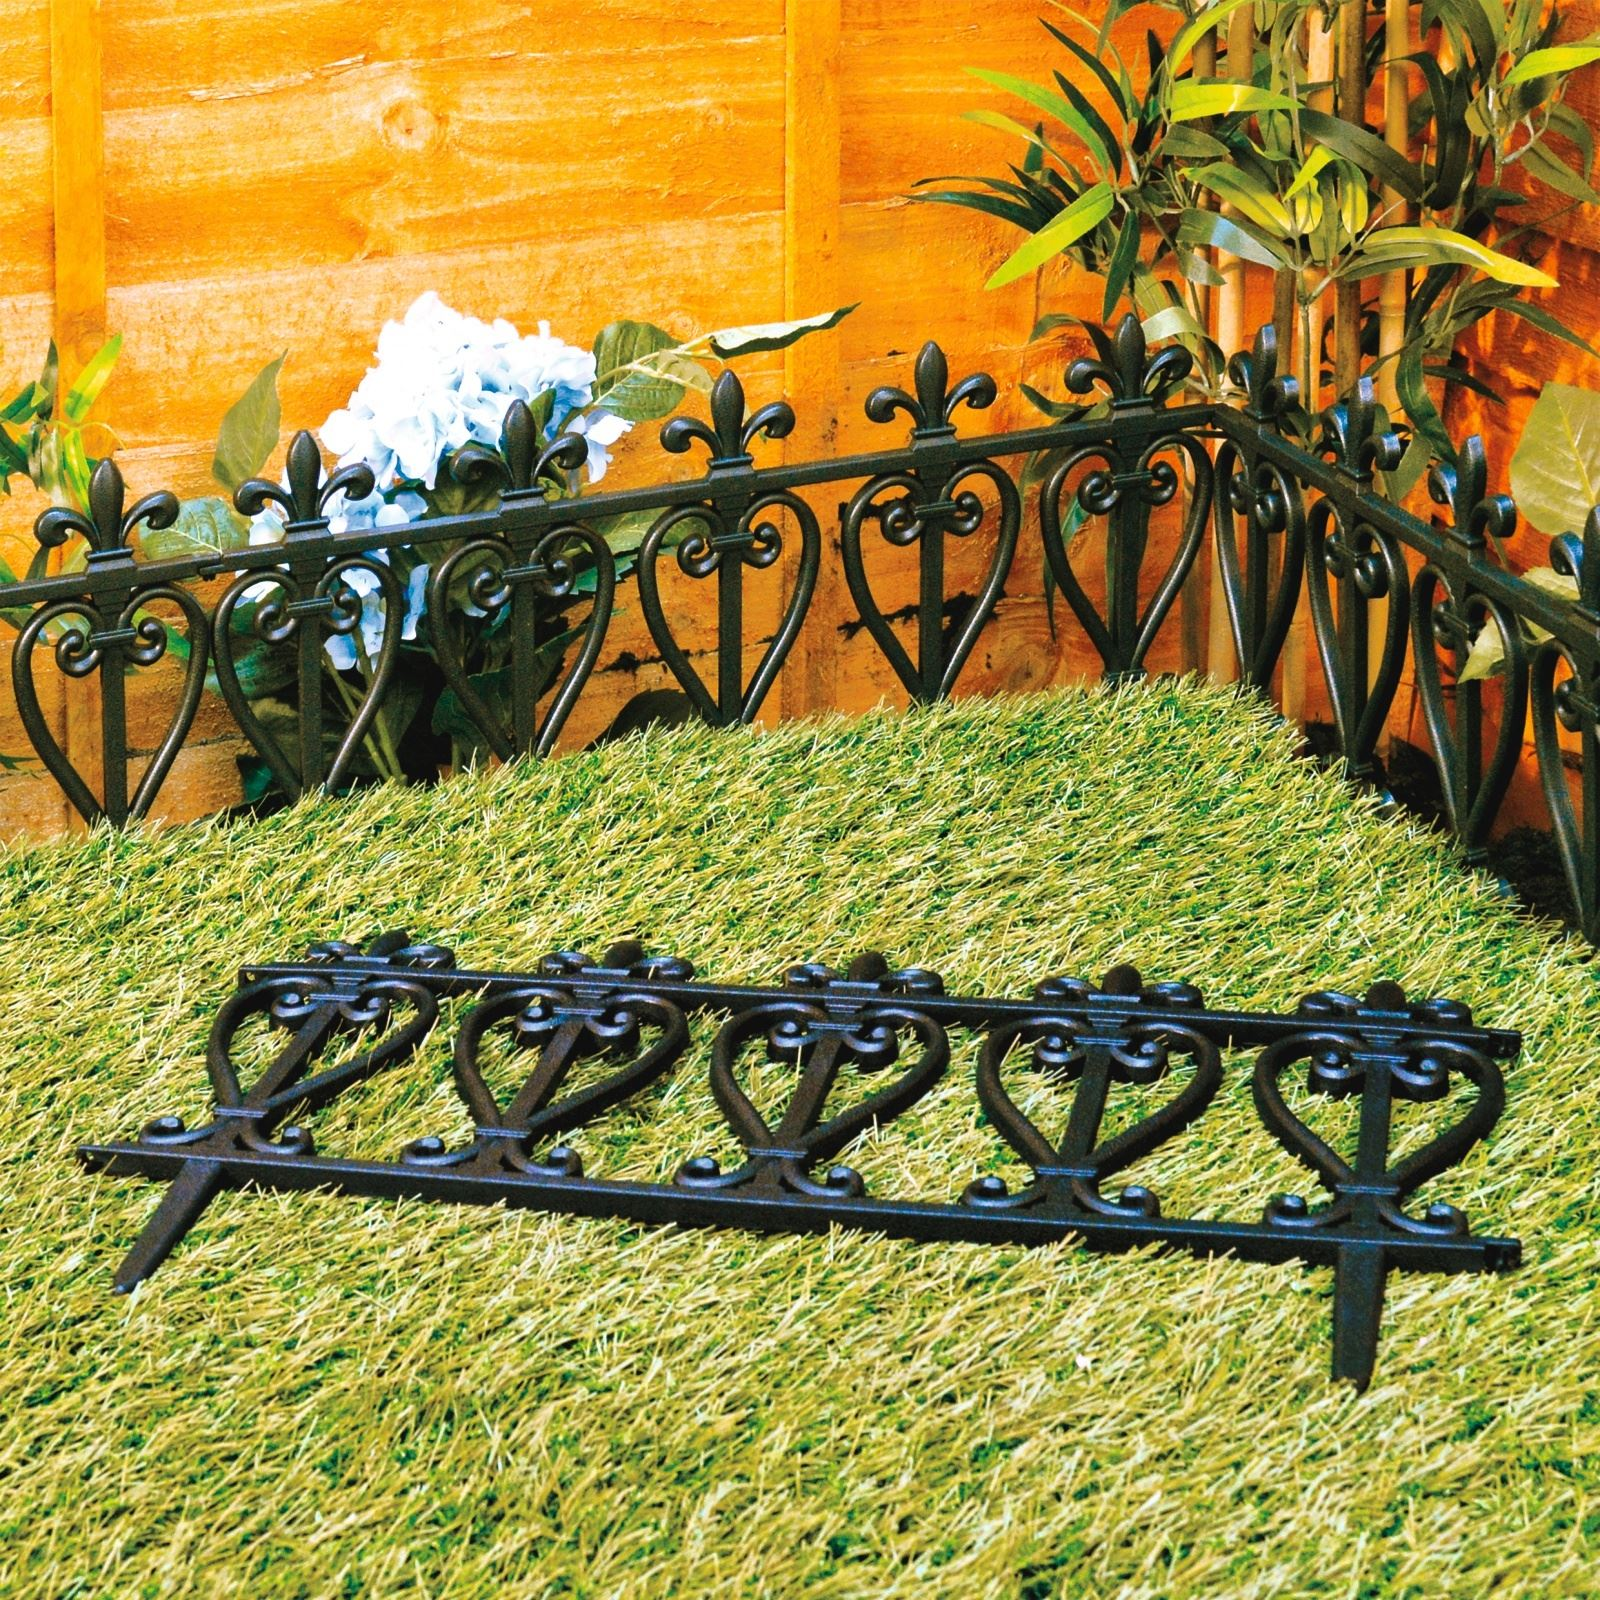 Garden Edging Lawn Flowerbed Border Fence Ornate Victorian